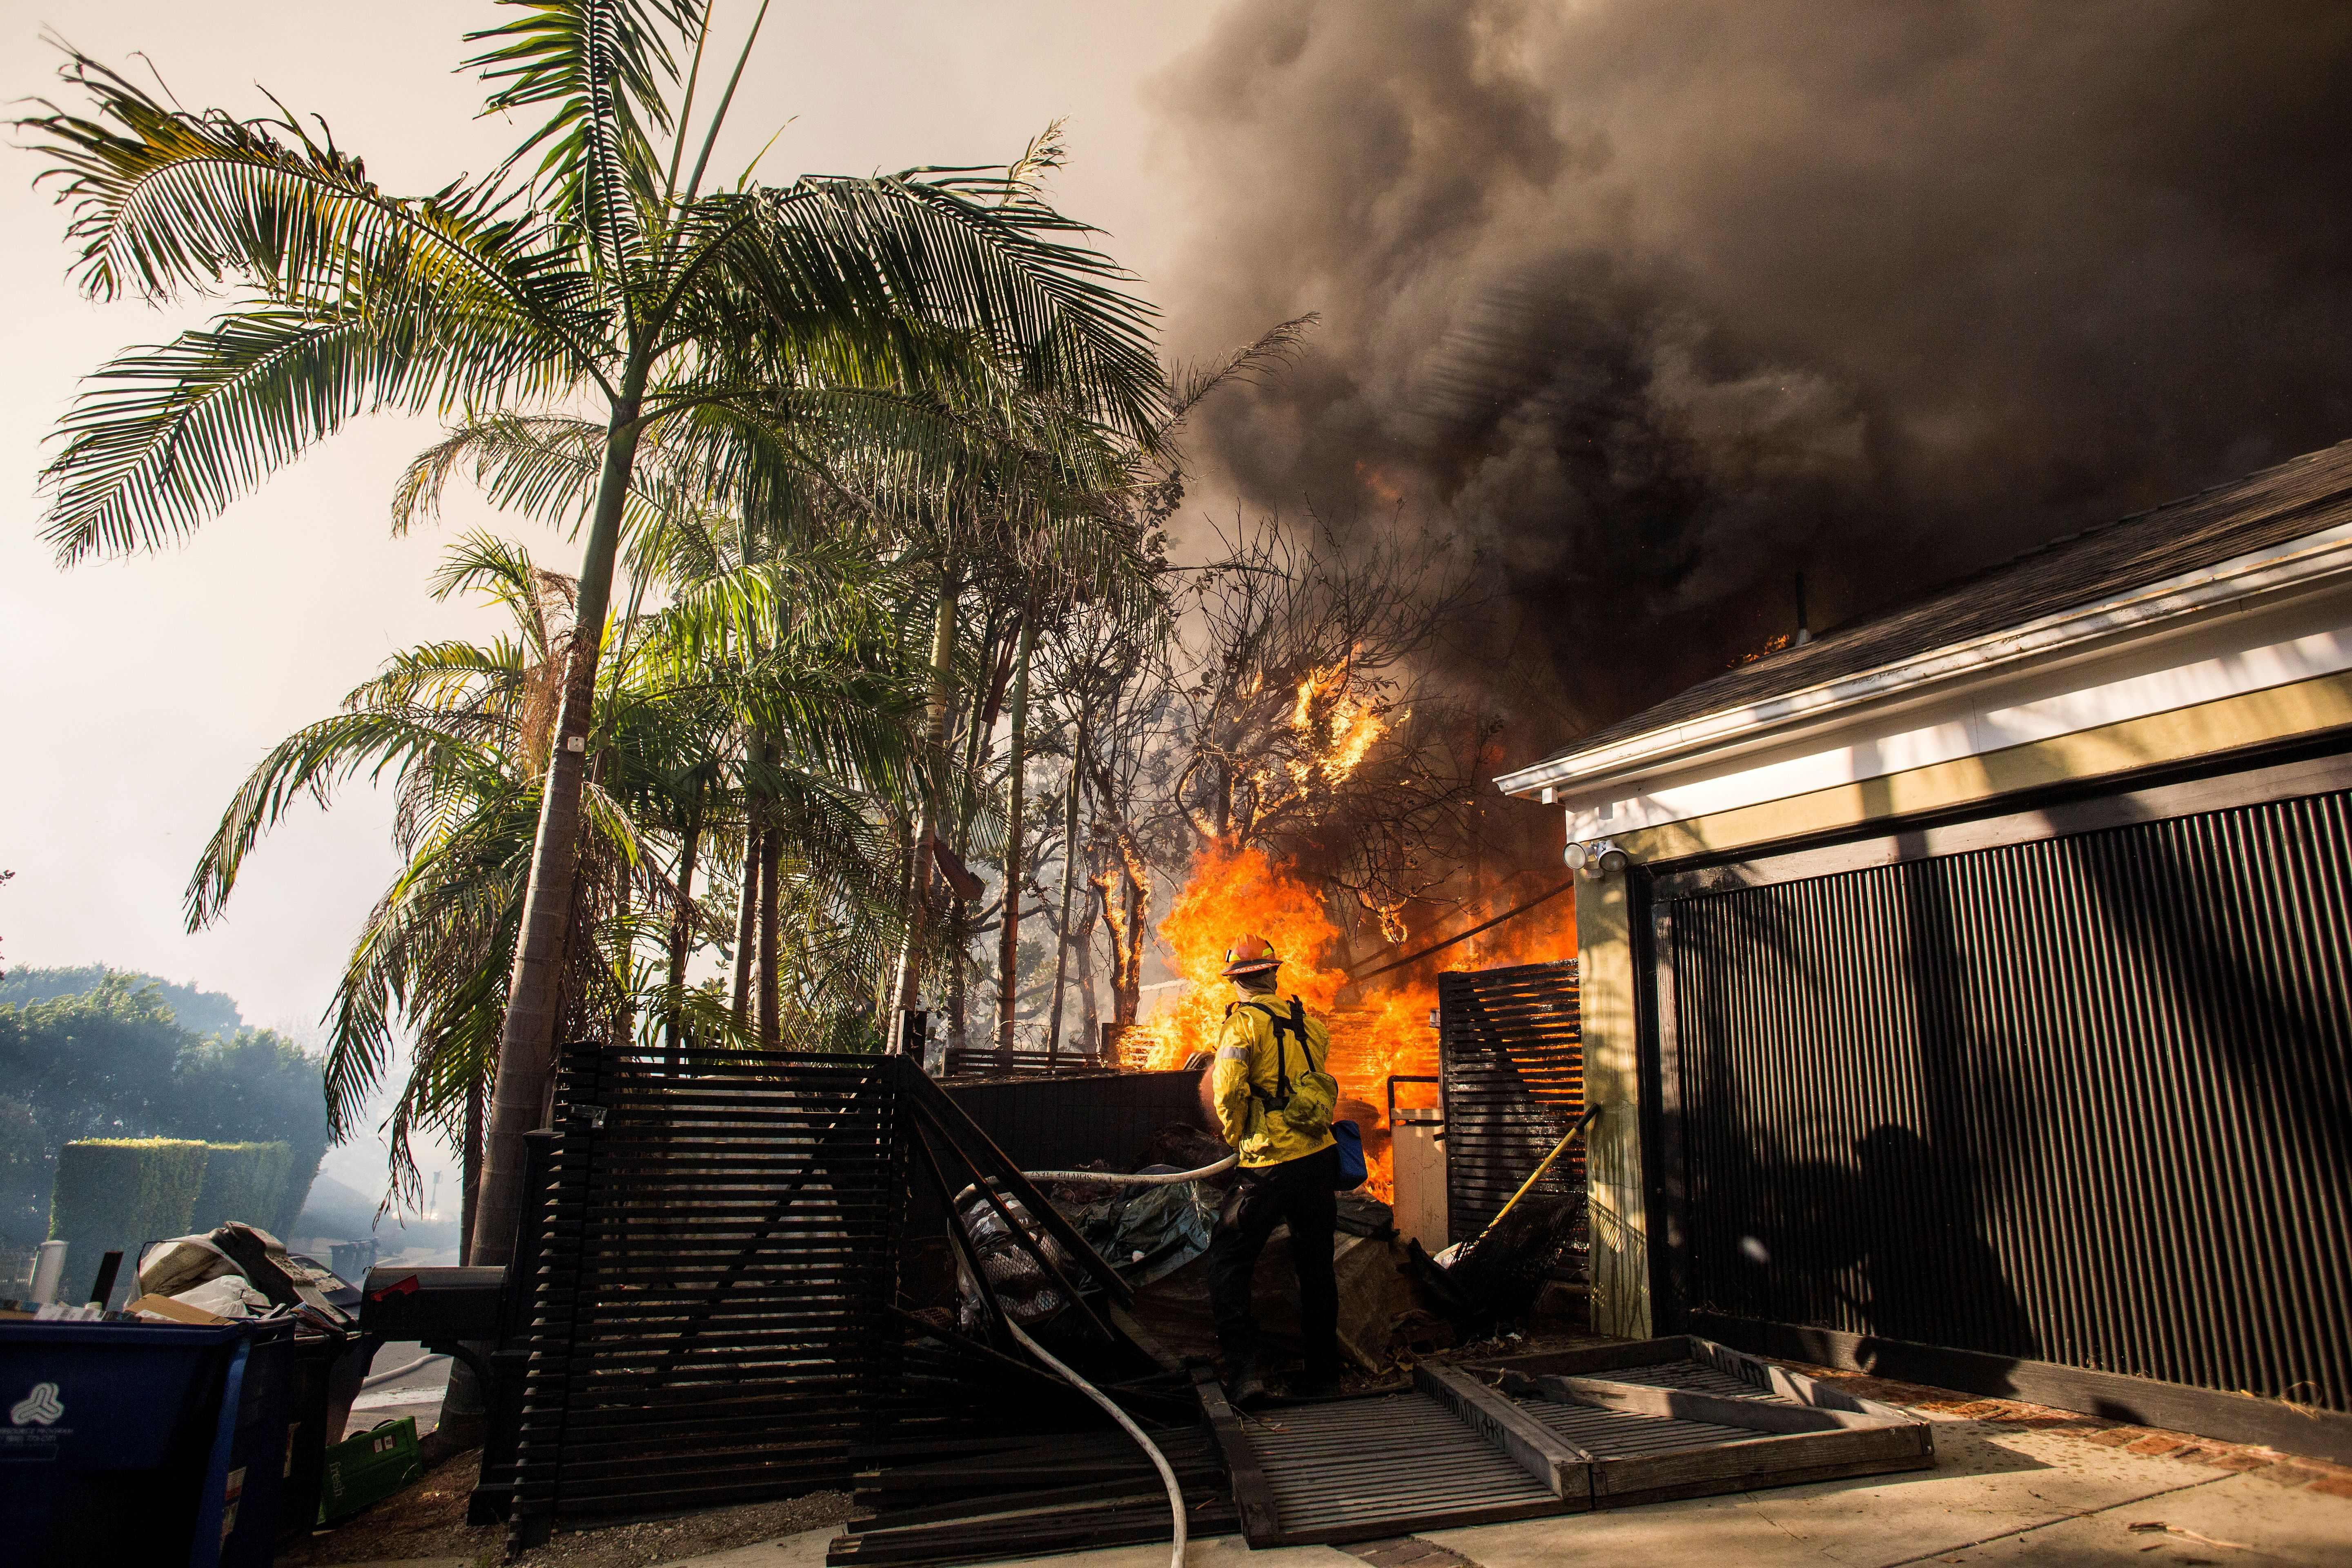 Illegal Cooking Fire Caused Devastating Skirball Fire In Southern